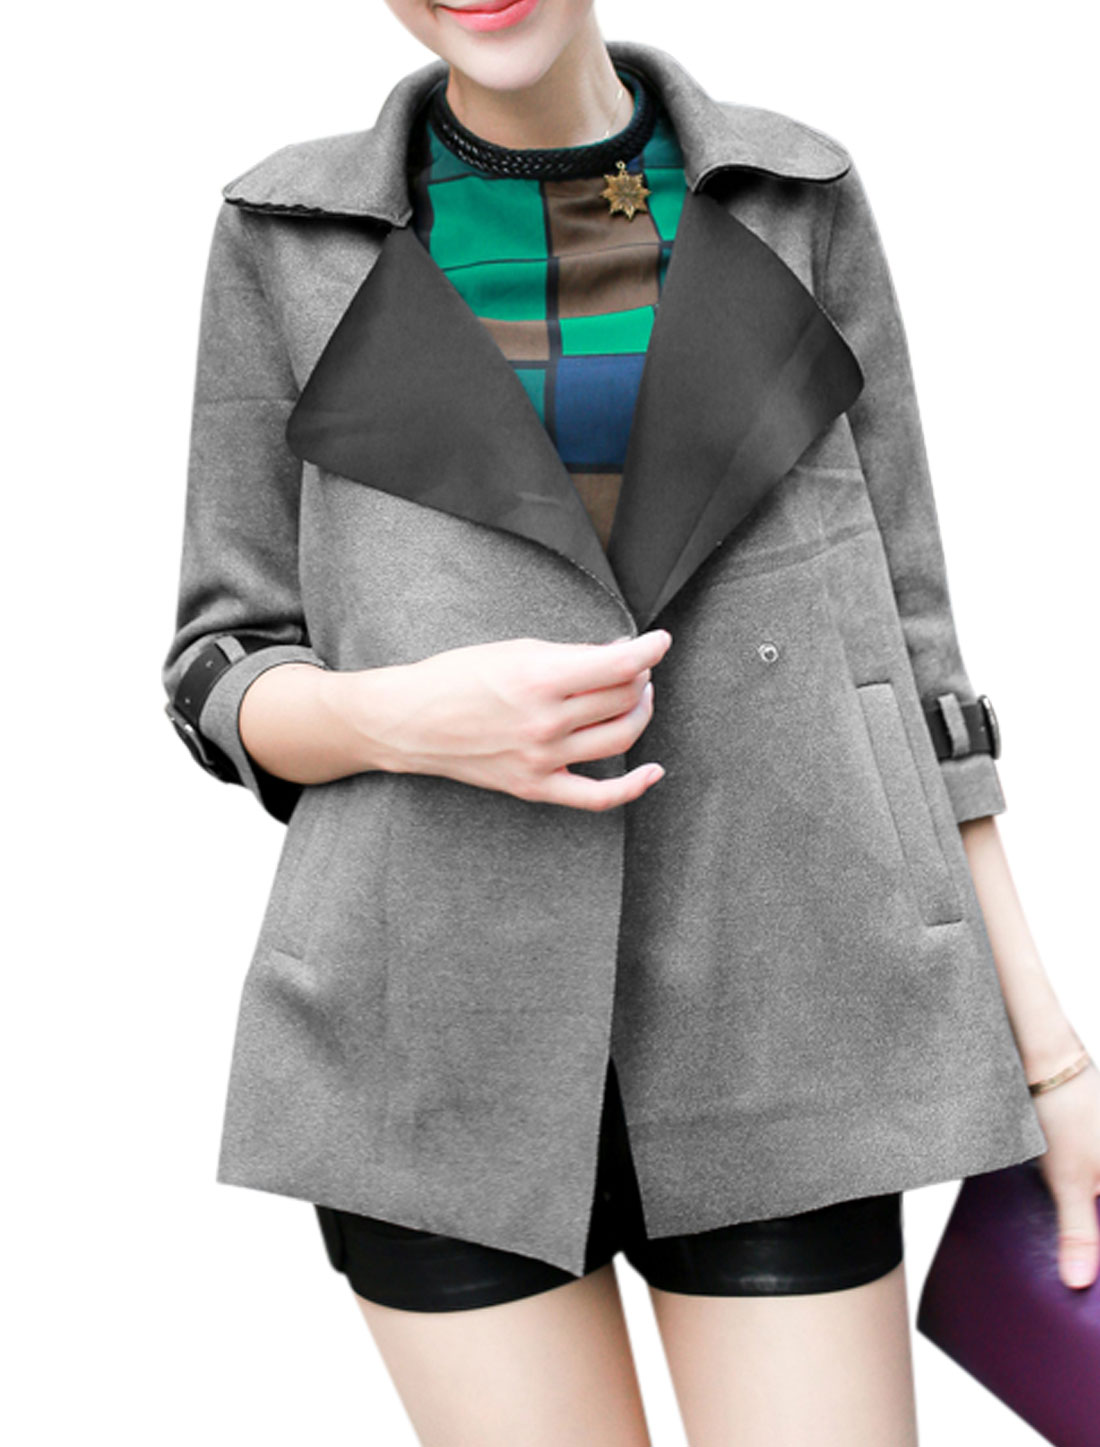 Women 3/4 Sleeves Buckle-tab Cuffs Double Breasted Stylish Jacket Light Gray XS